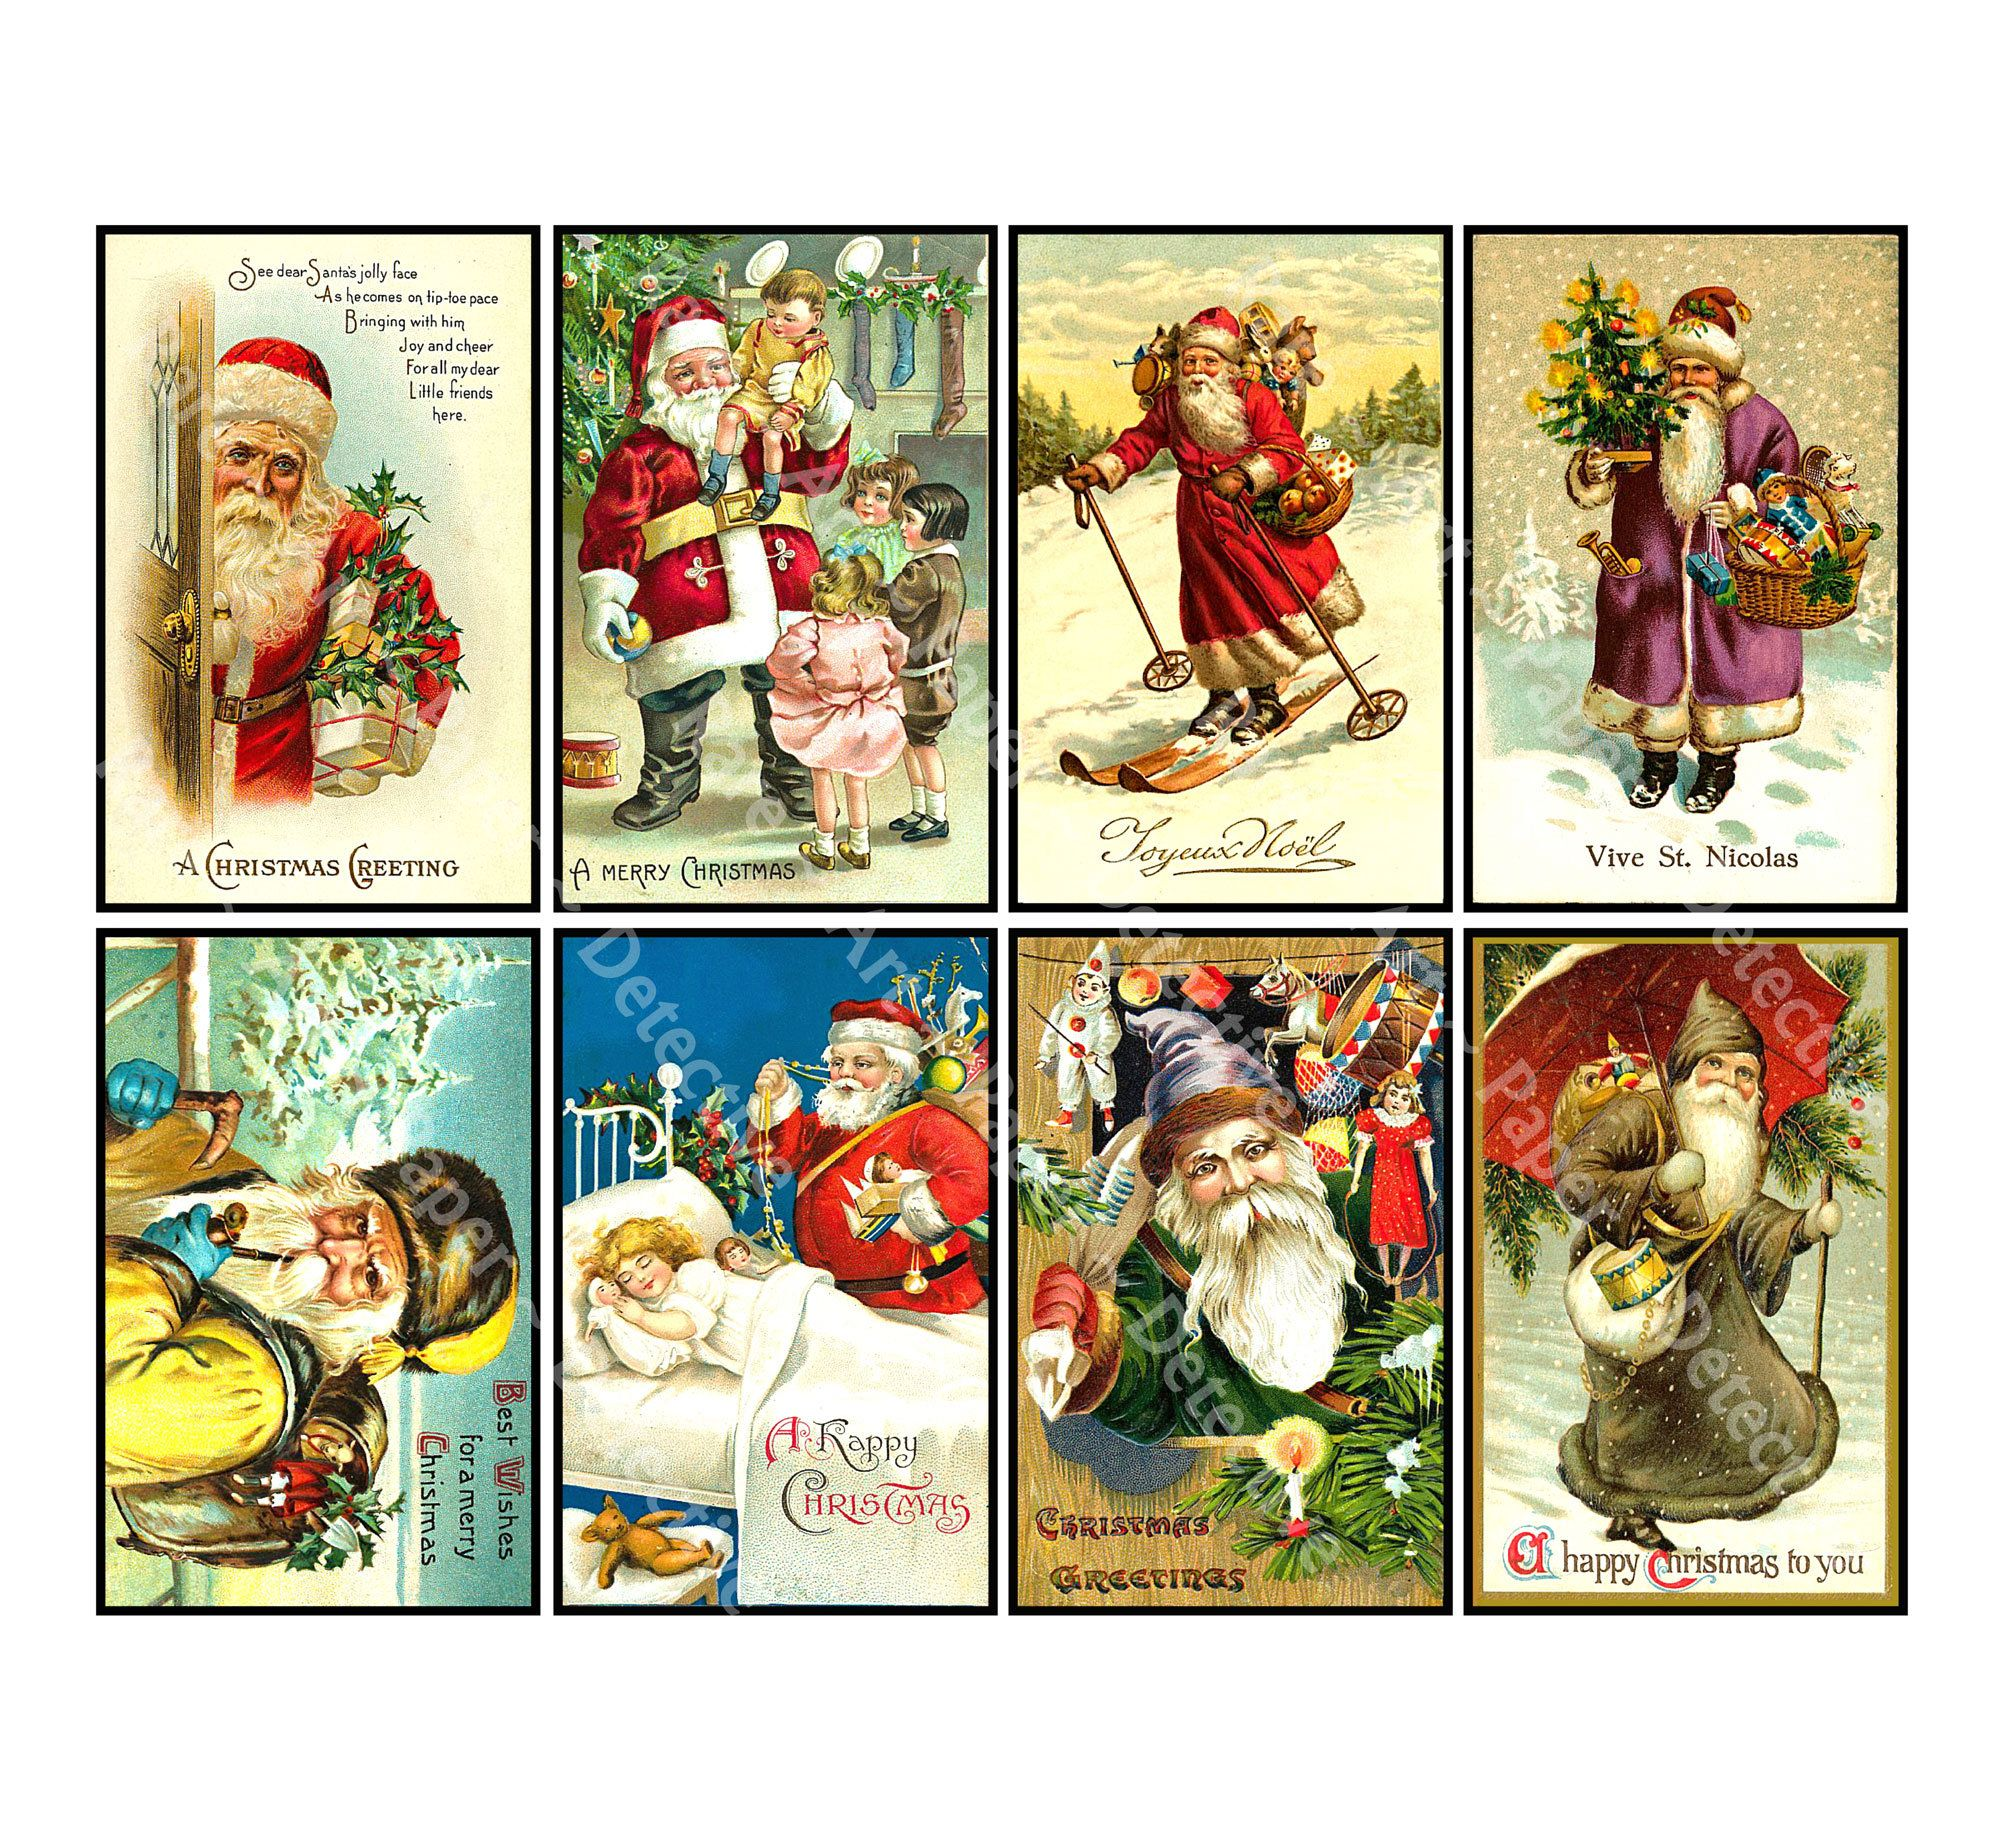 8 Pcs Christmas Stickers Deluxe Set Of Old Fashioned Etsy In 2020 Christmas Stickers Vintage Christmas Greeting Cards Sticker Photo Paper